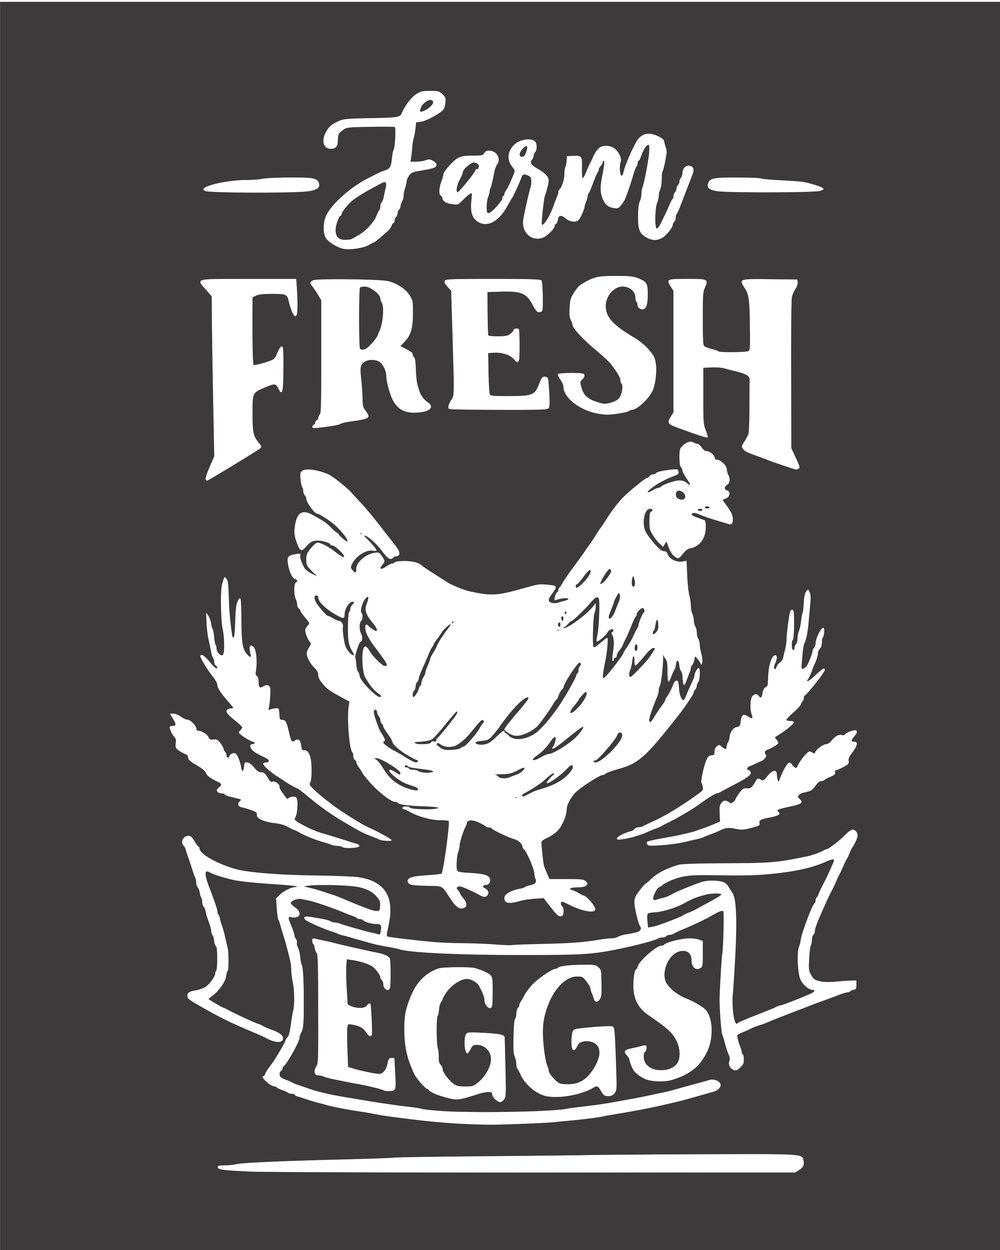 fresh farm eggs.jpg